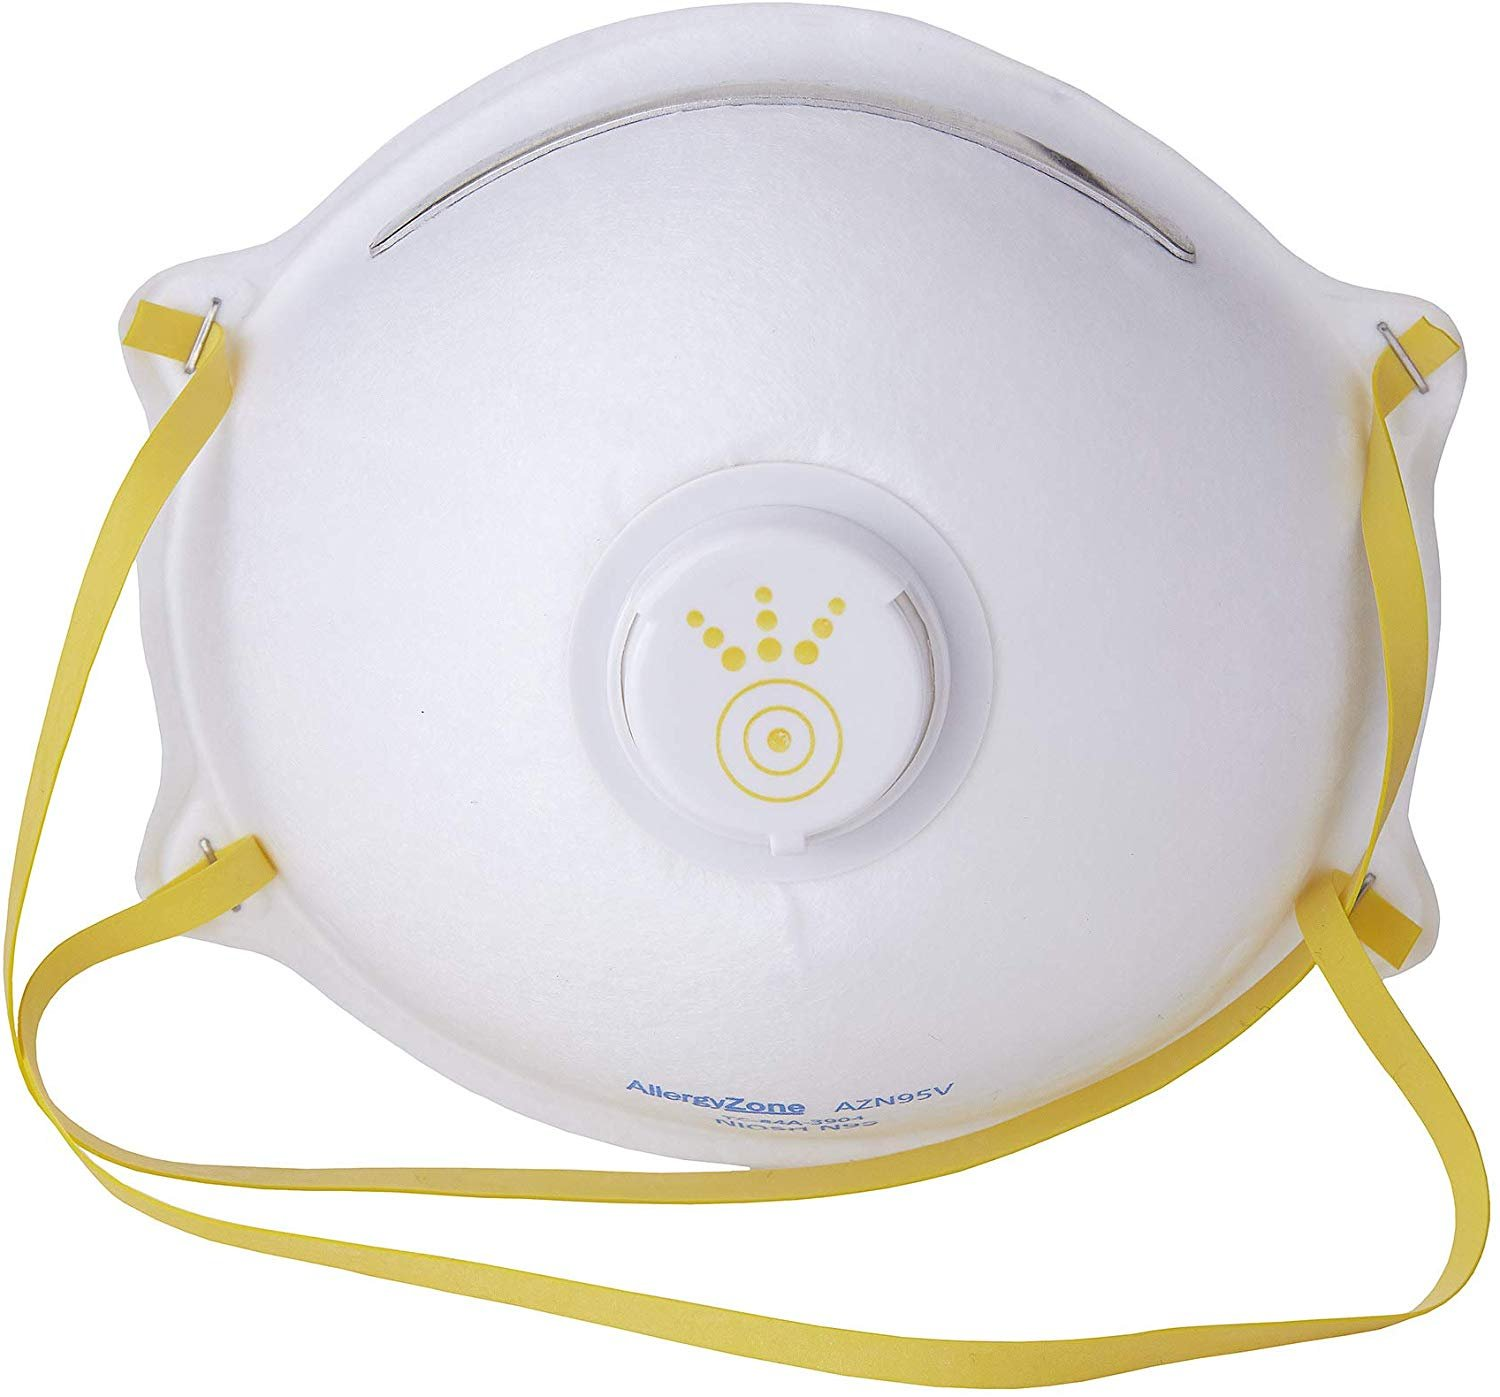 n95 mask for smoke from fire